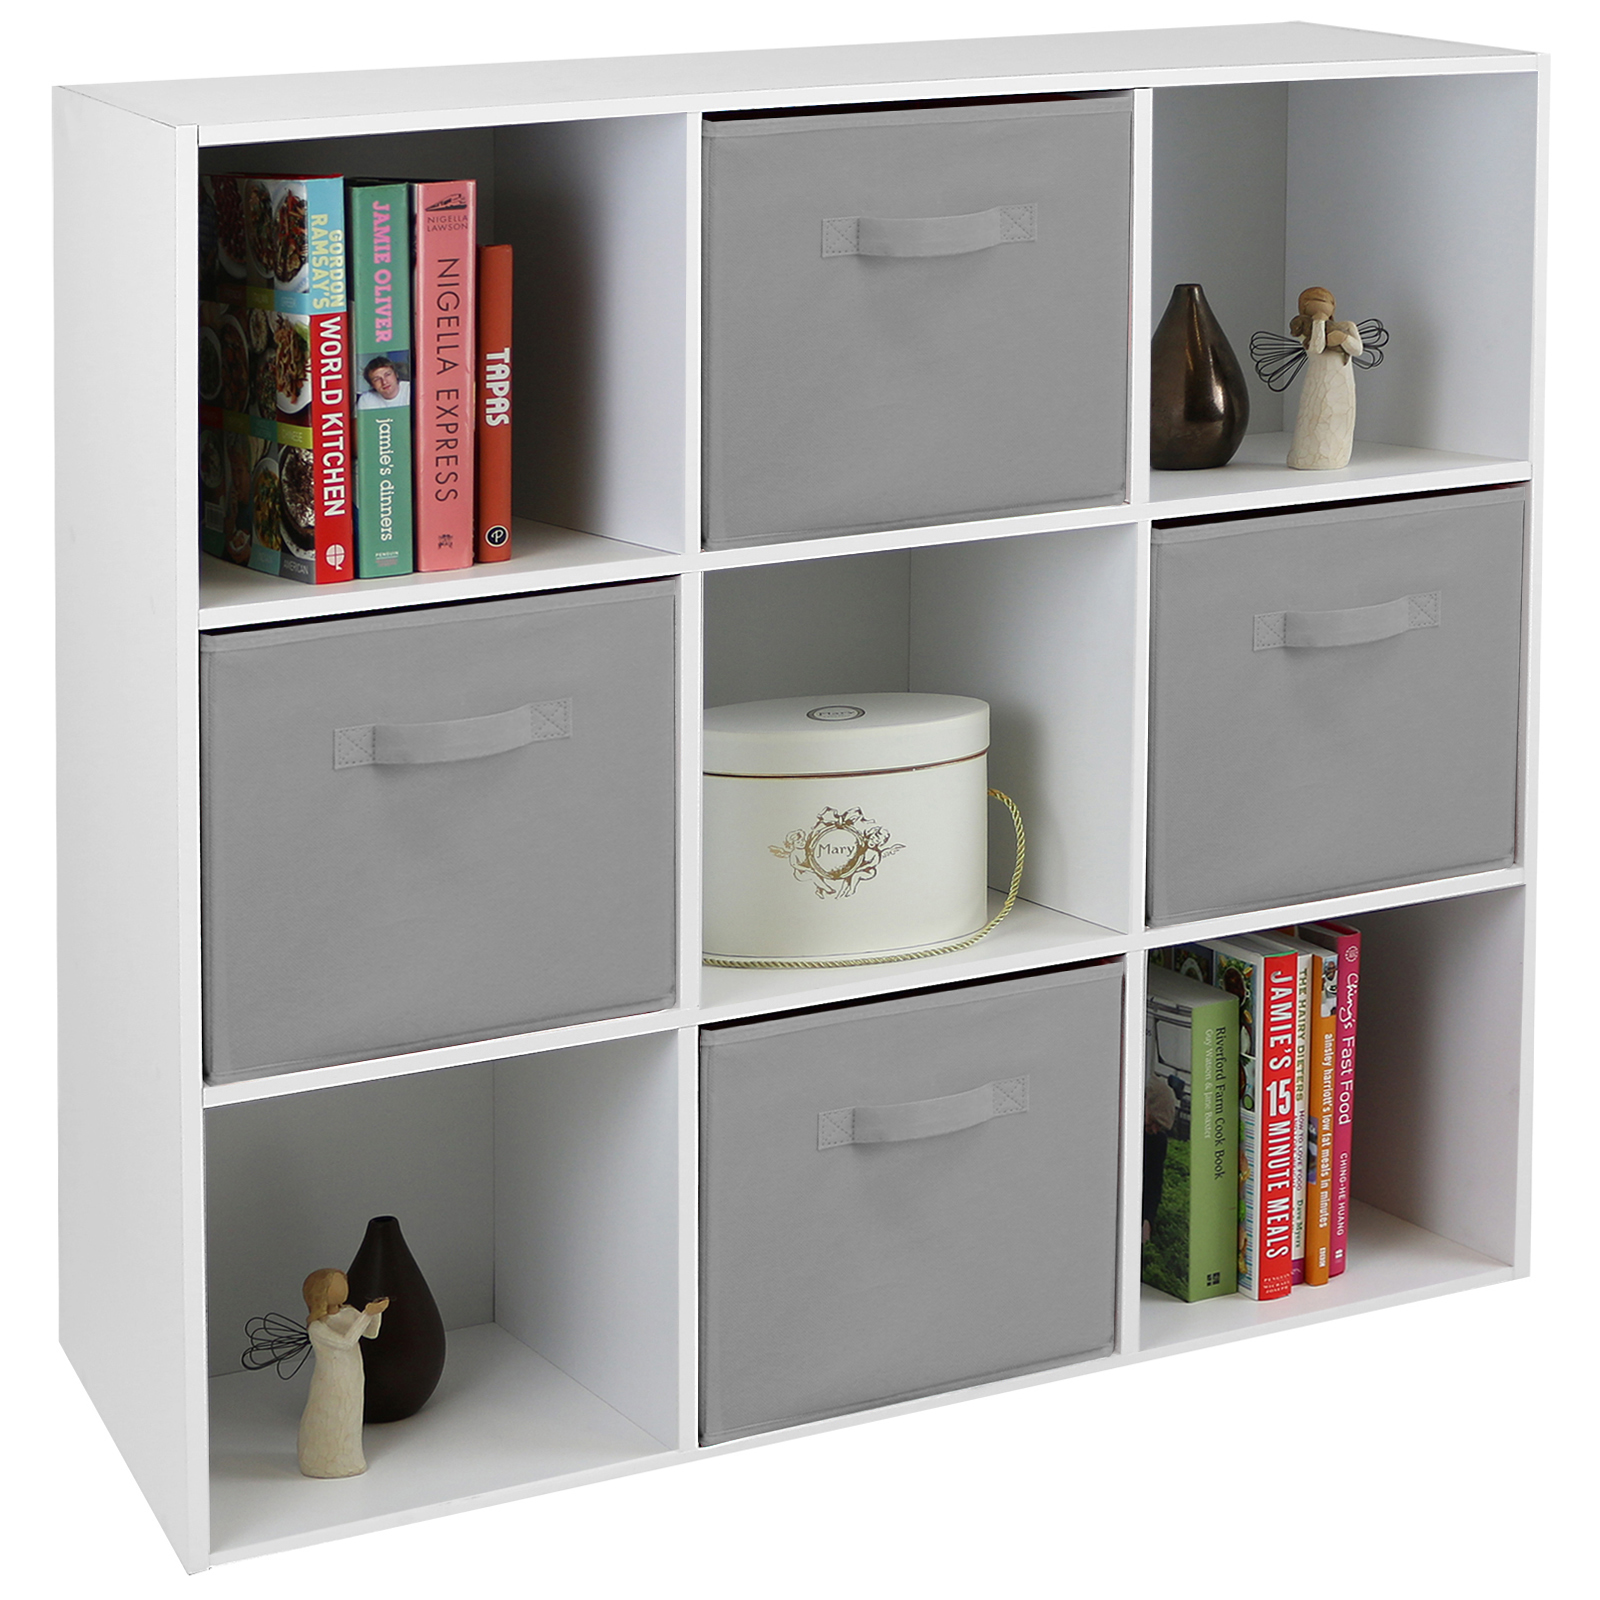 hartleys white 9 cube modular shelving display unit 4 x grey fabric storage box ebay. Black Bedroom Furniture Sets. Home Design Ideas